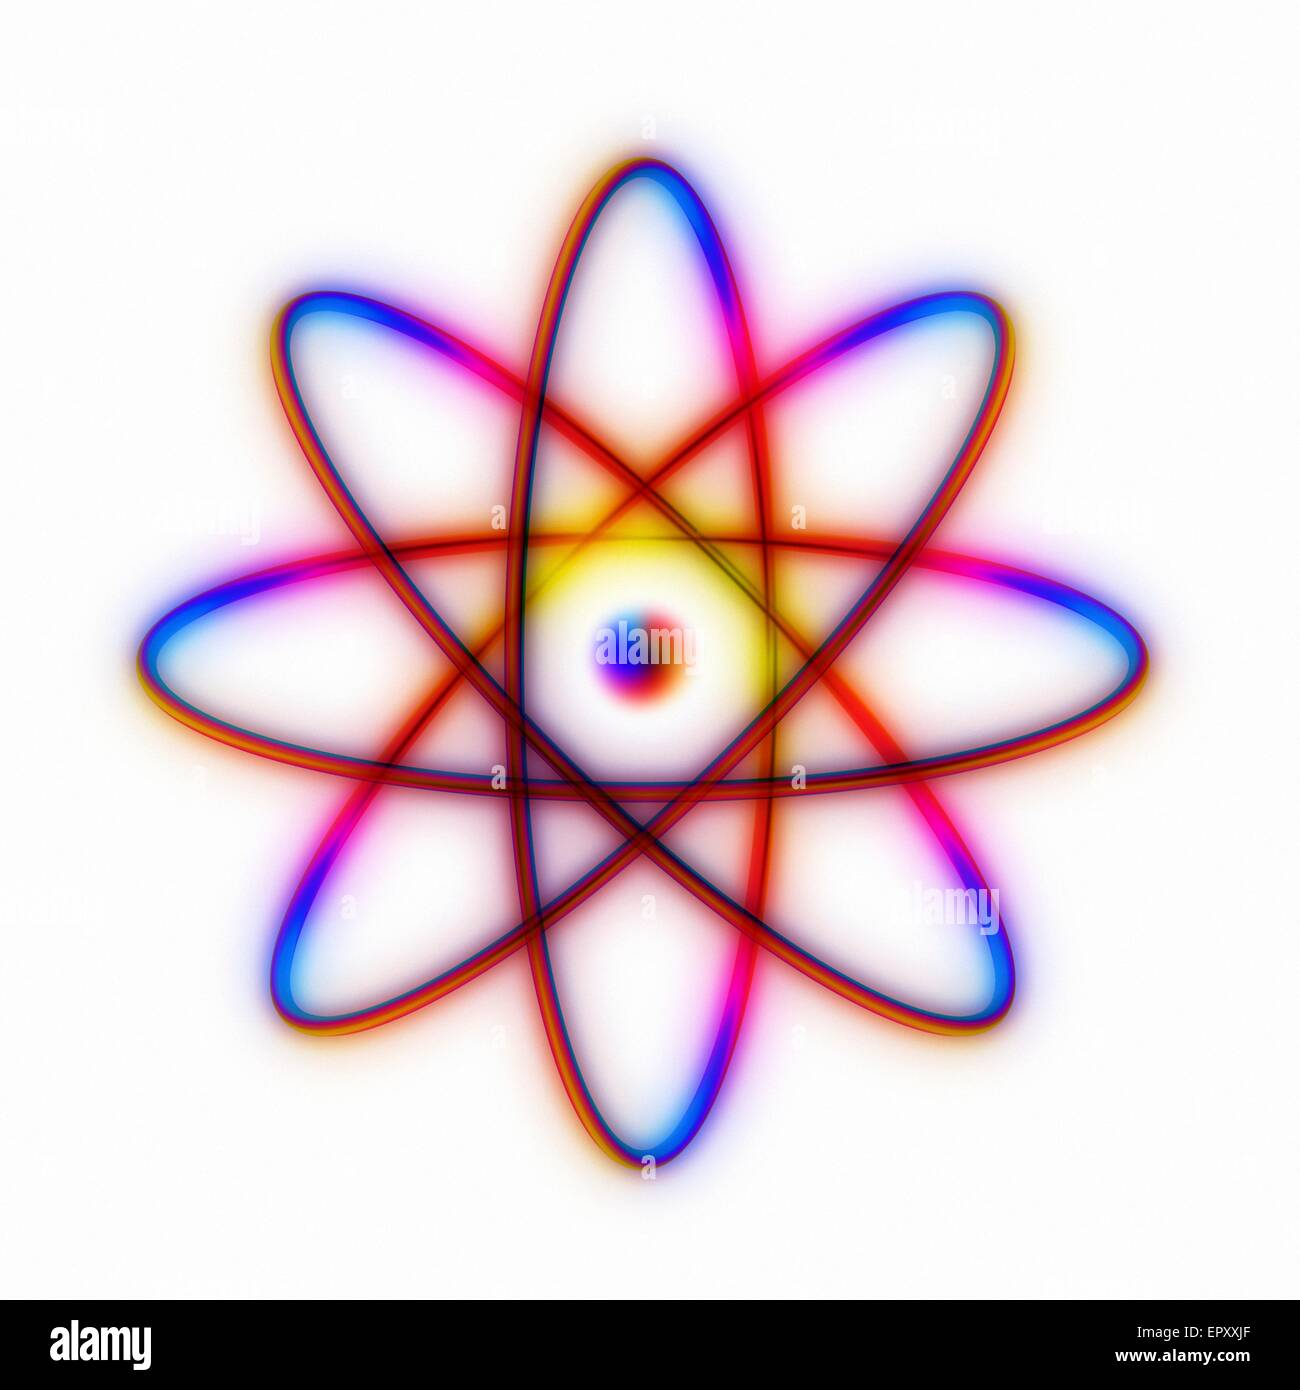 hight resolution of atomic structure conceptual computer artwork representing the structure of an atom eight electrons are